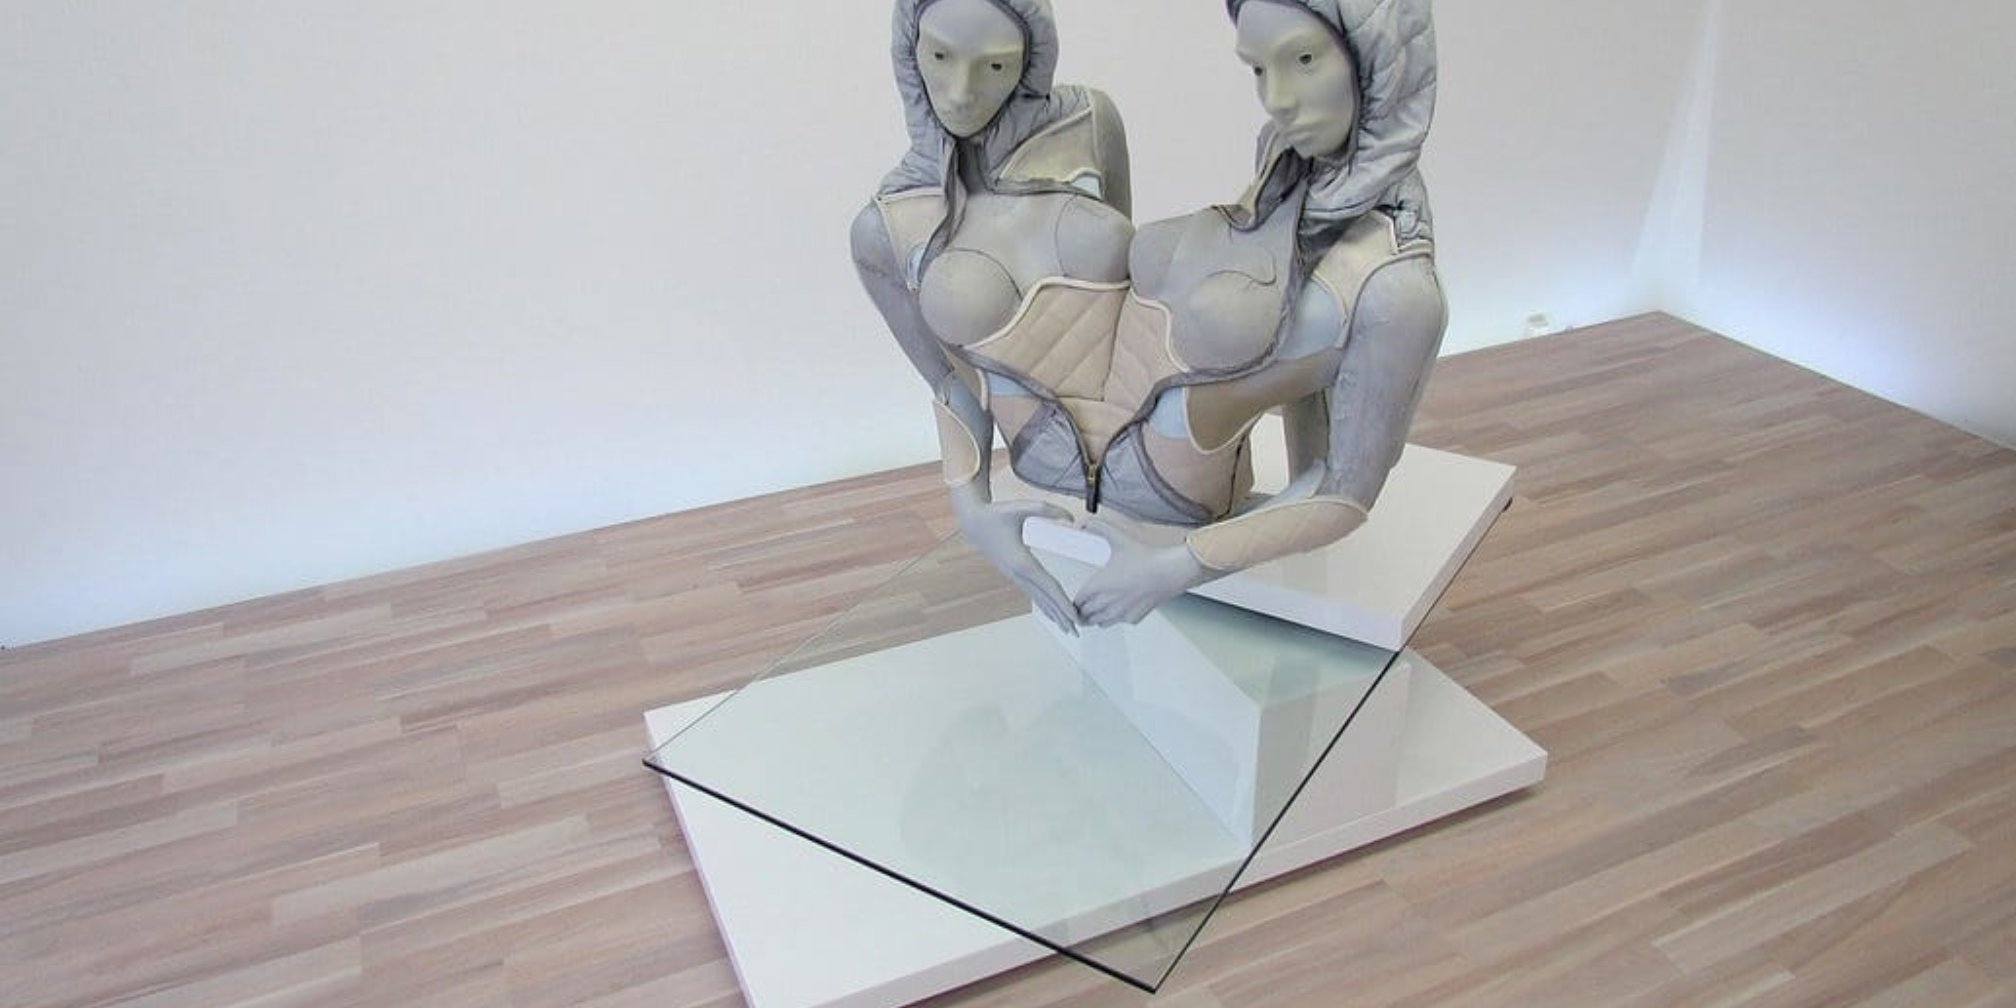 Anna Uddenberg, BFF Twin Torso, 2015, courtesy of the artist and Sandy Brown, Berlin